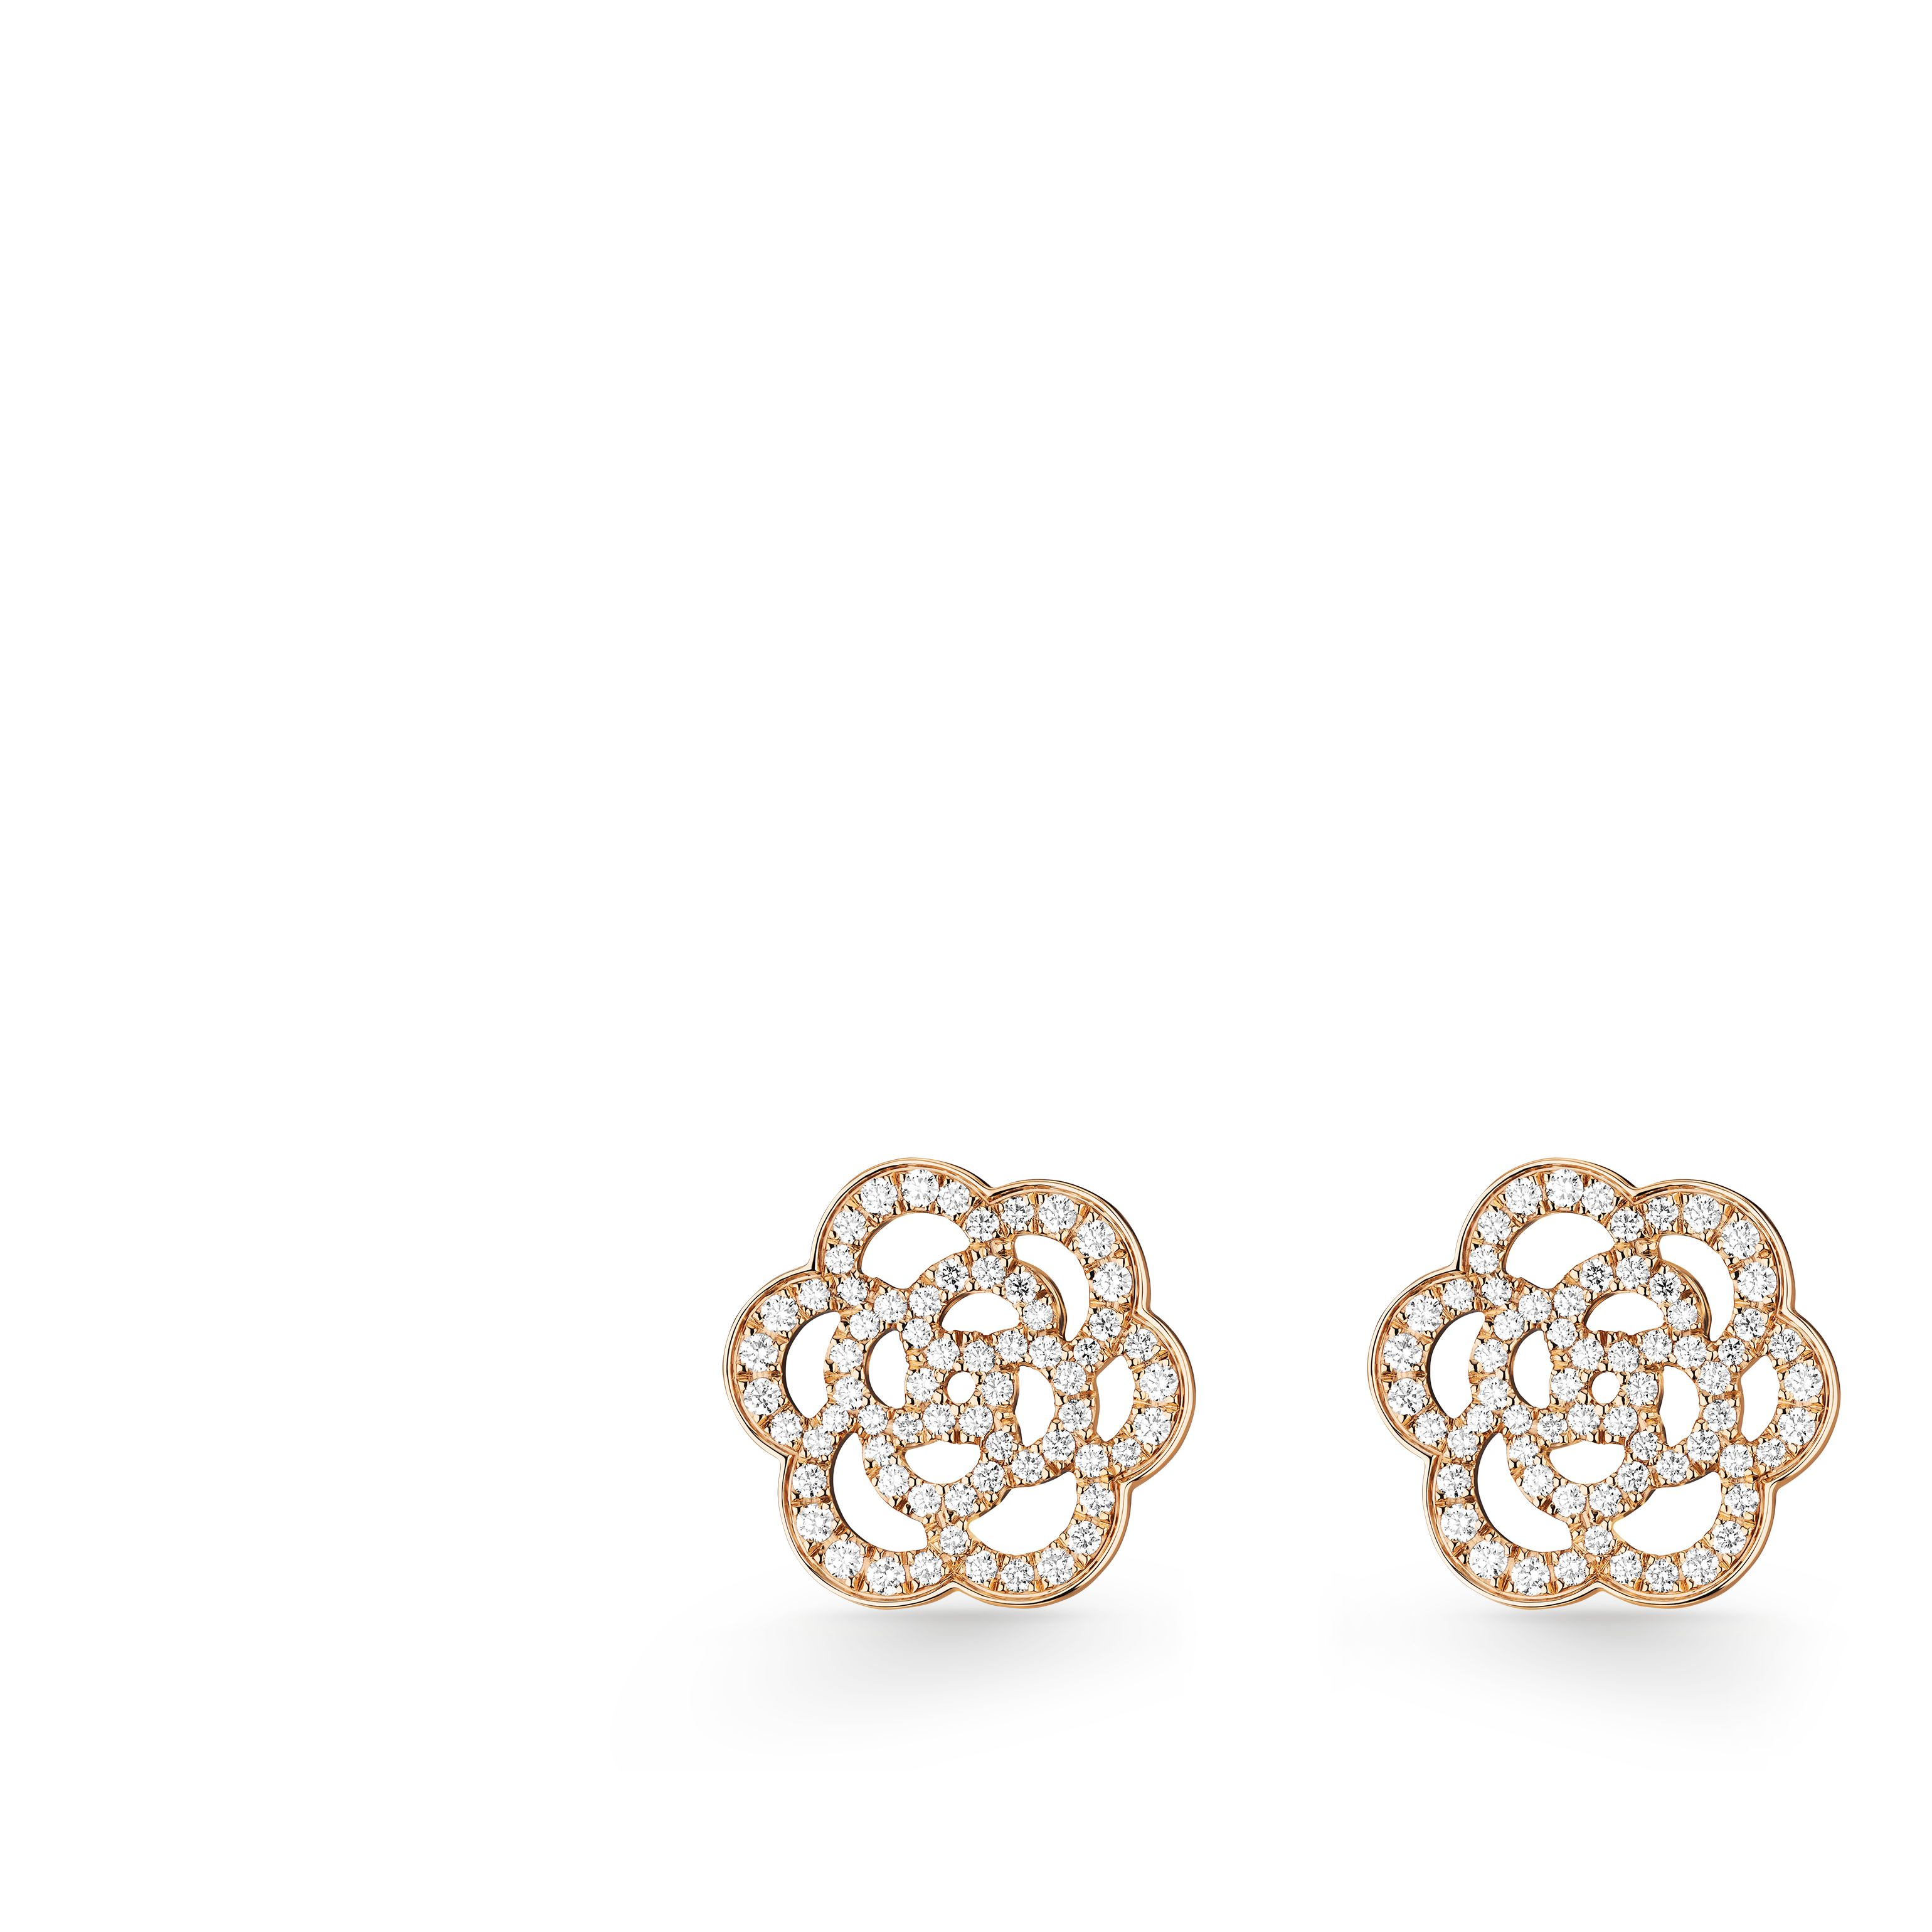 Cam 233 Lia Earrings Cam 233 Lia Ajour 233 Earrings In 18k Pink